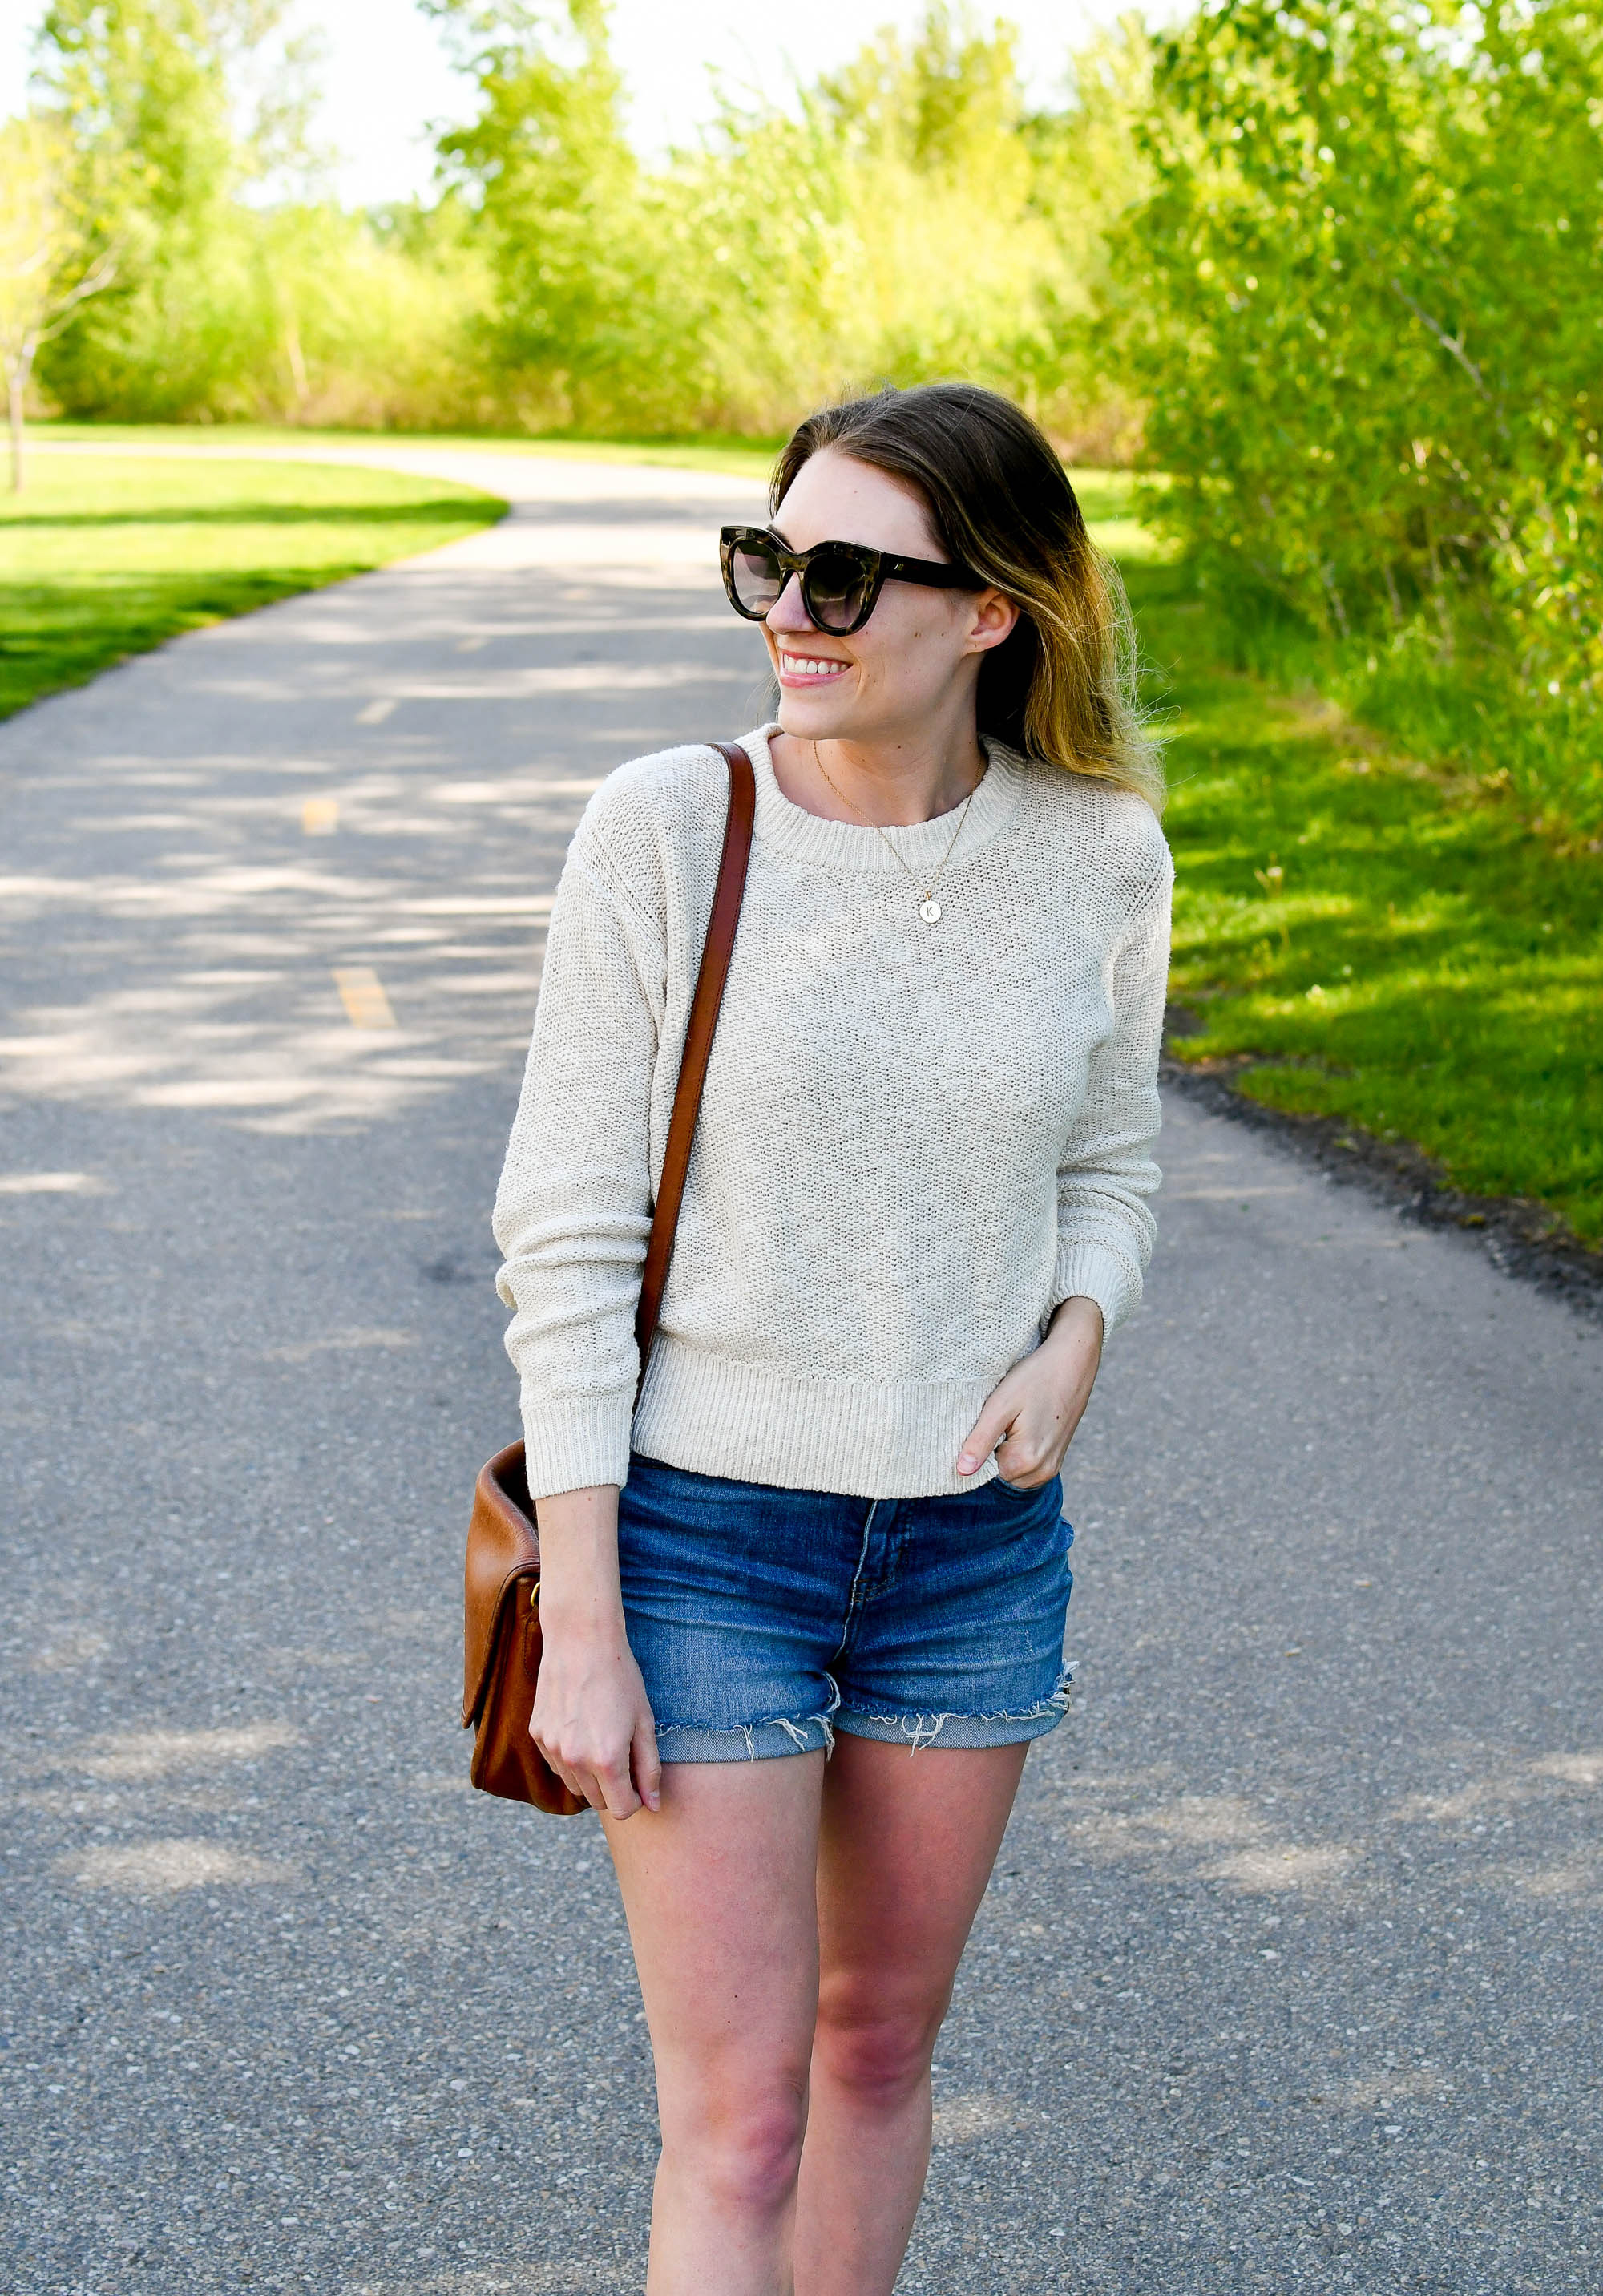 Everlane cotton-linen sweater in sand casual spring outfit — Cotton Cashmere Cat Hair